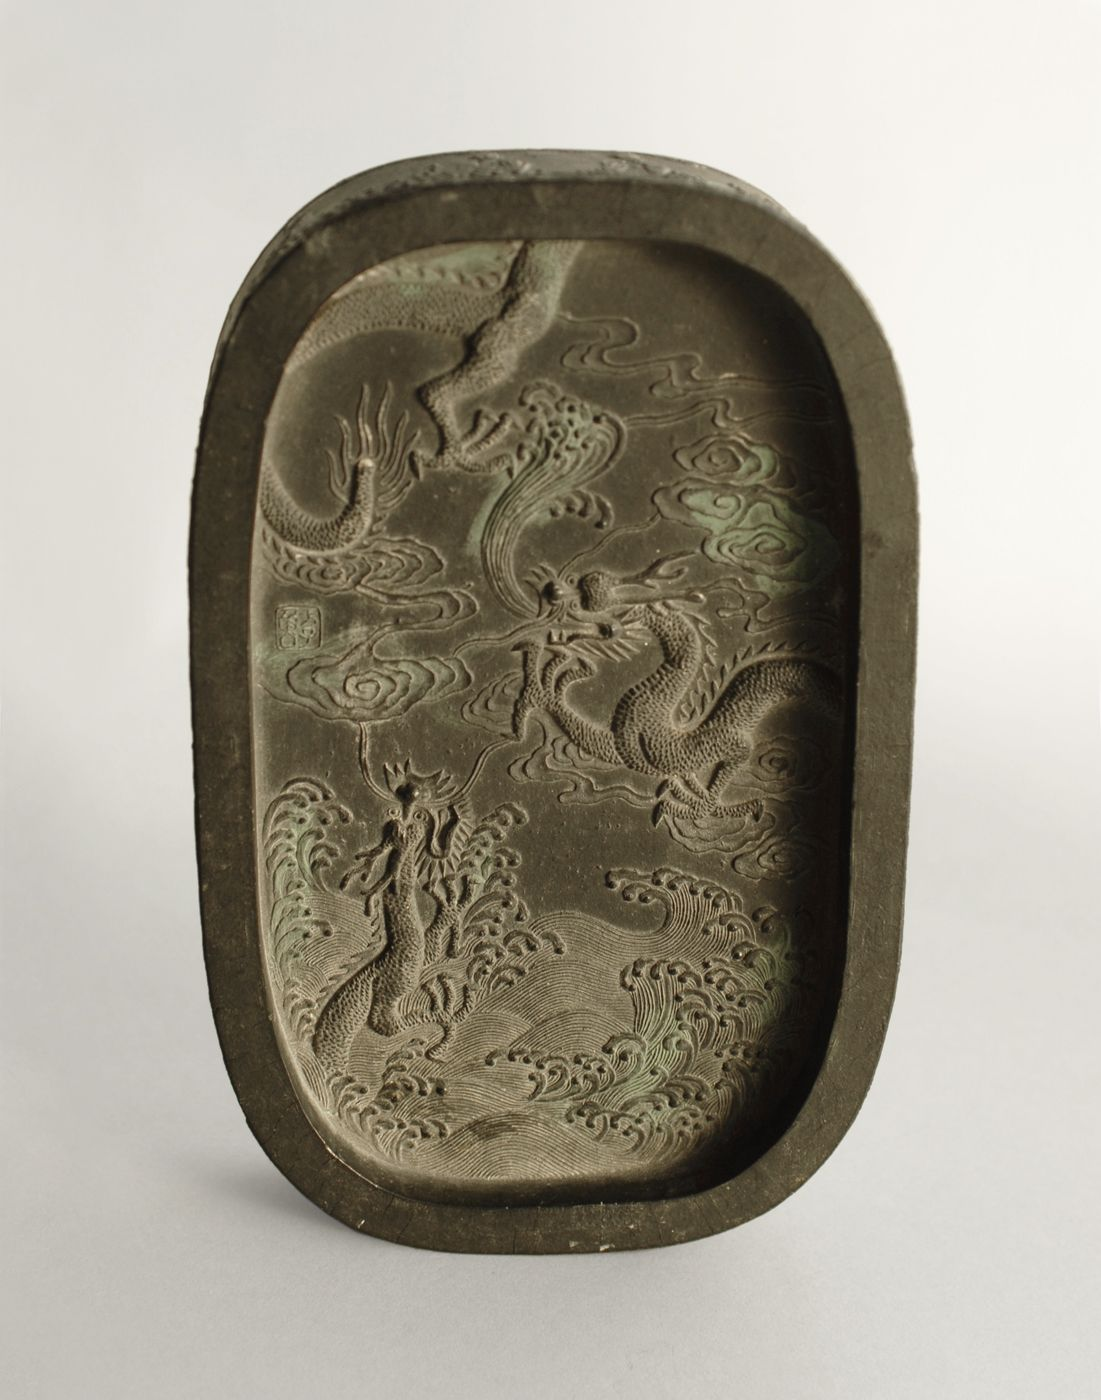 Beautiful Antique Chinese Ink Stick (Ink Cake). Decorated with ...